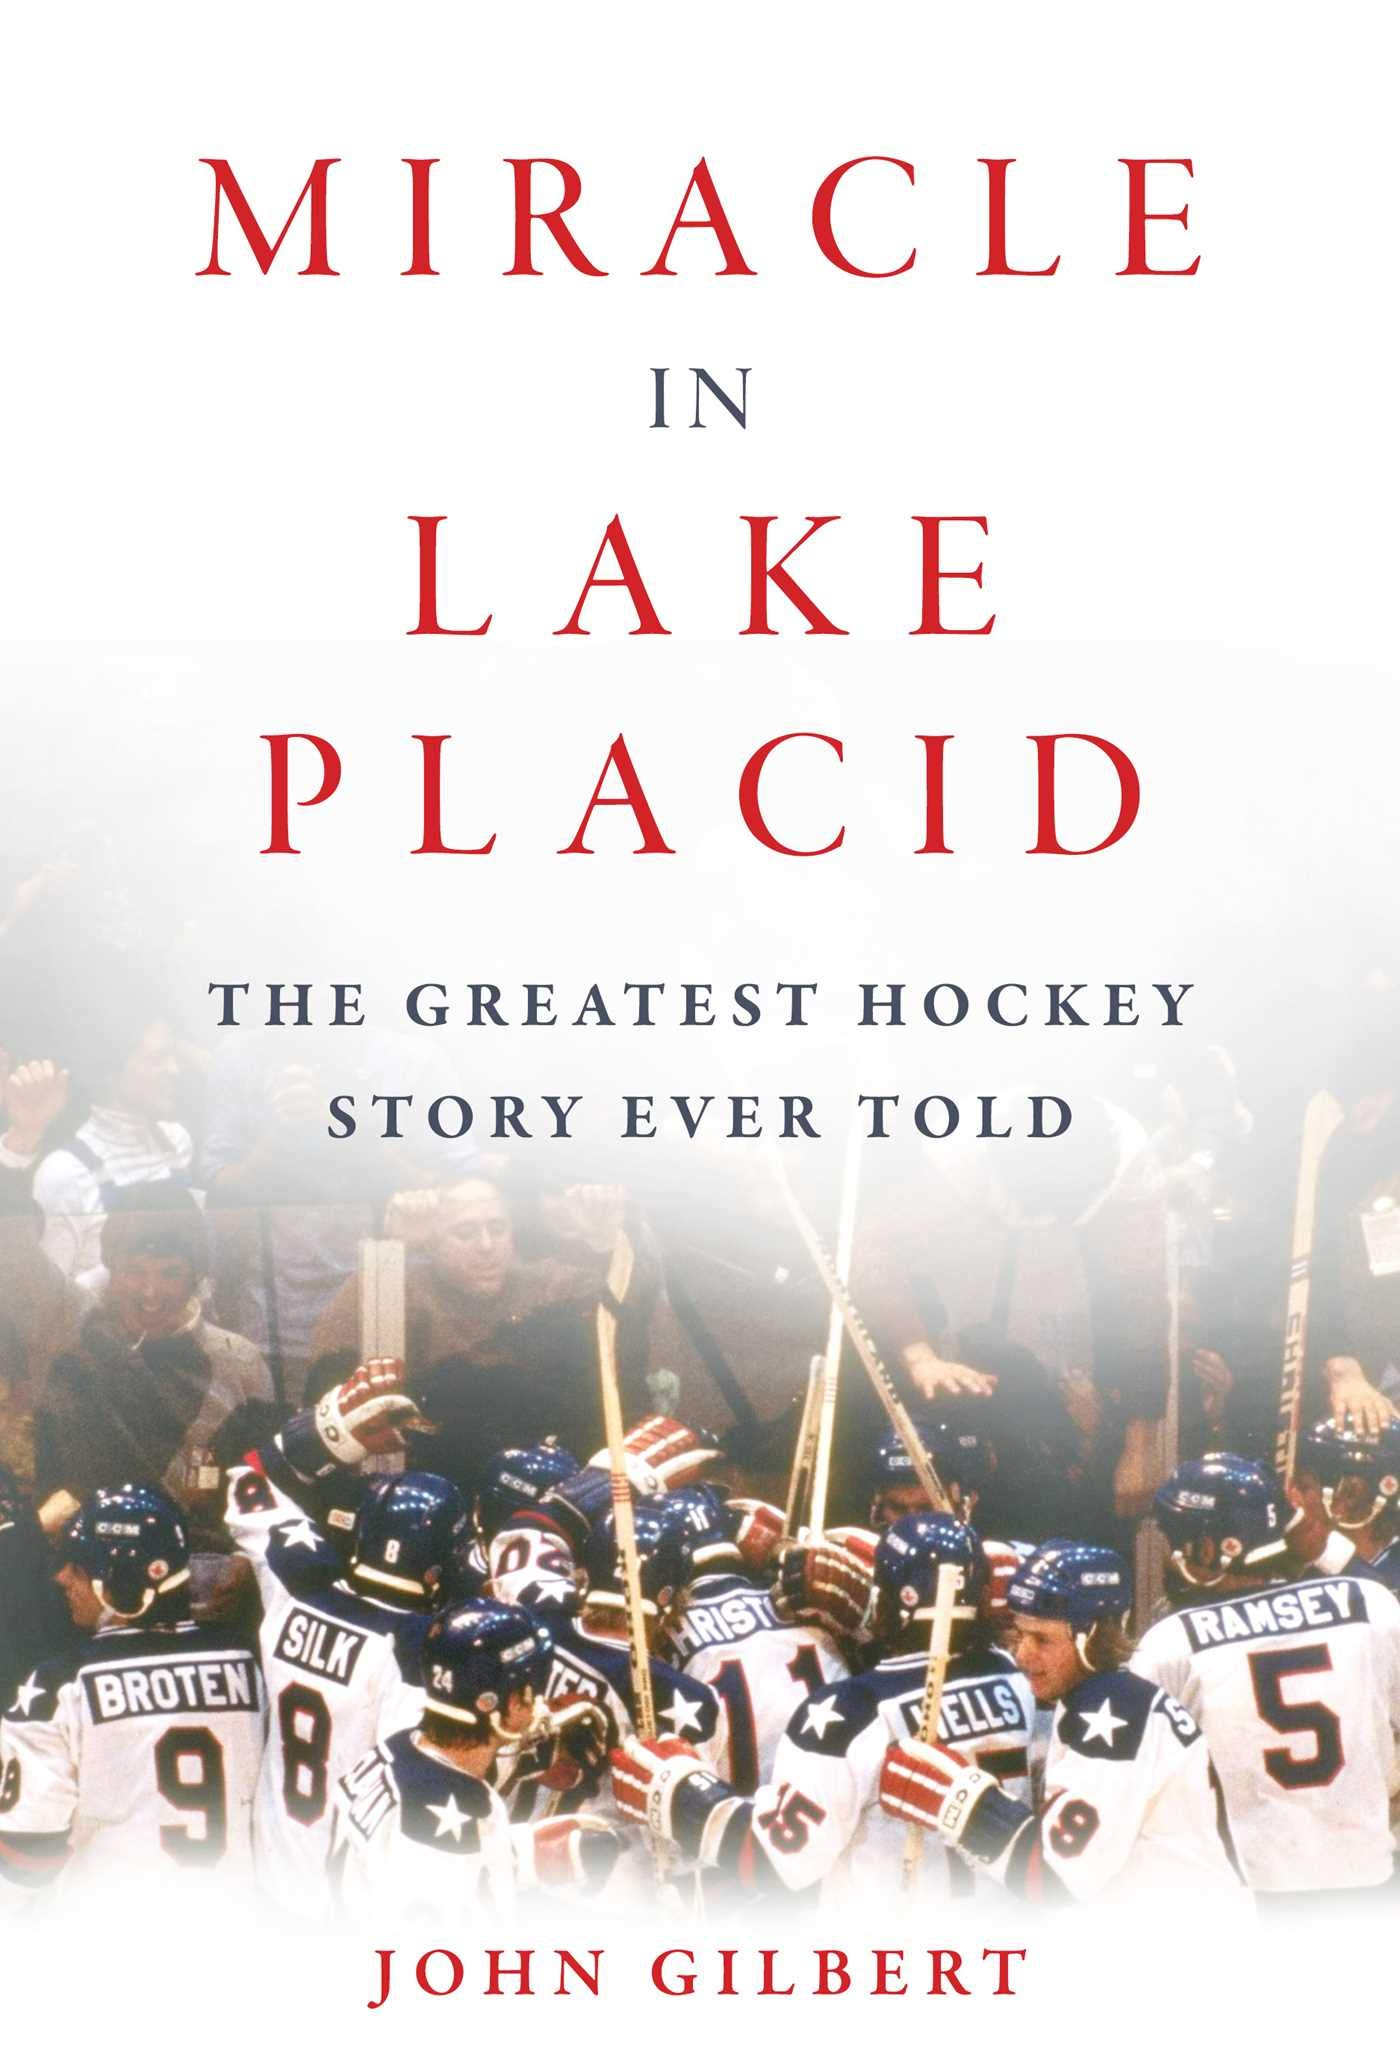 Miracle in Lake Placid: The Greatest Hockey Story Ever Told by Sports Publishing